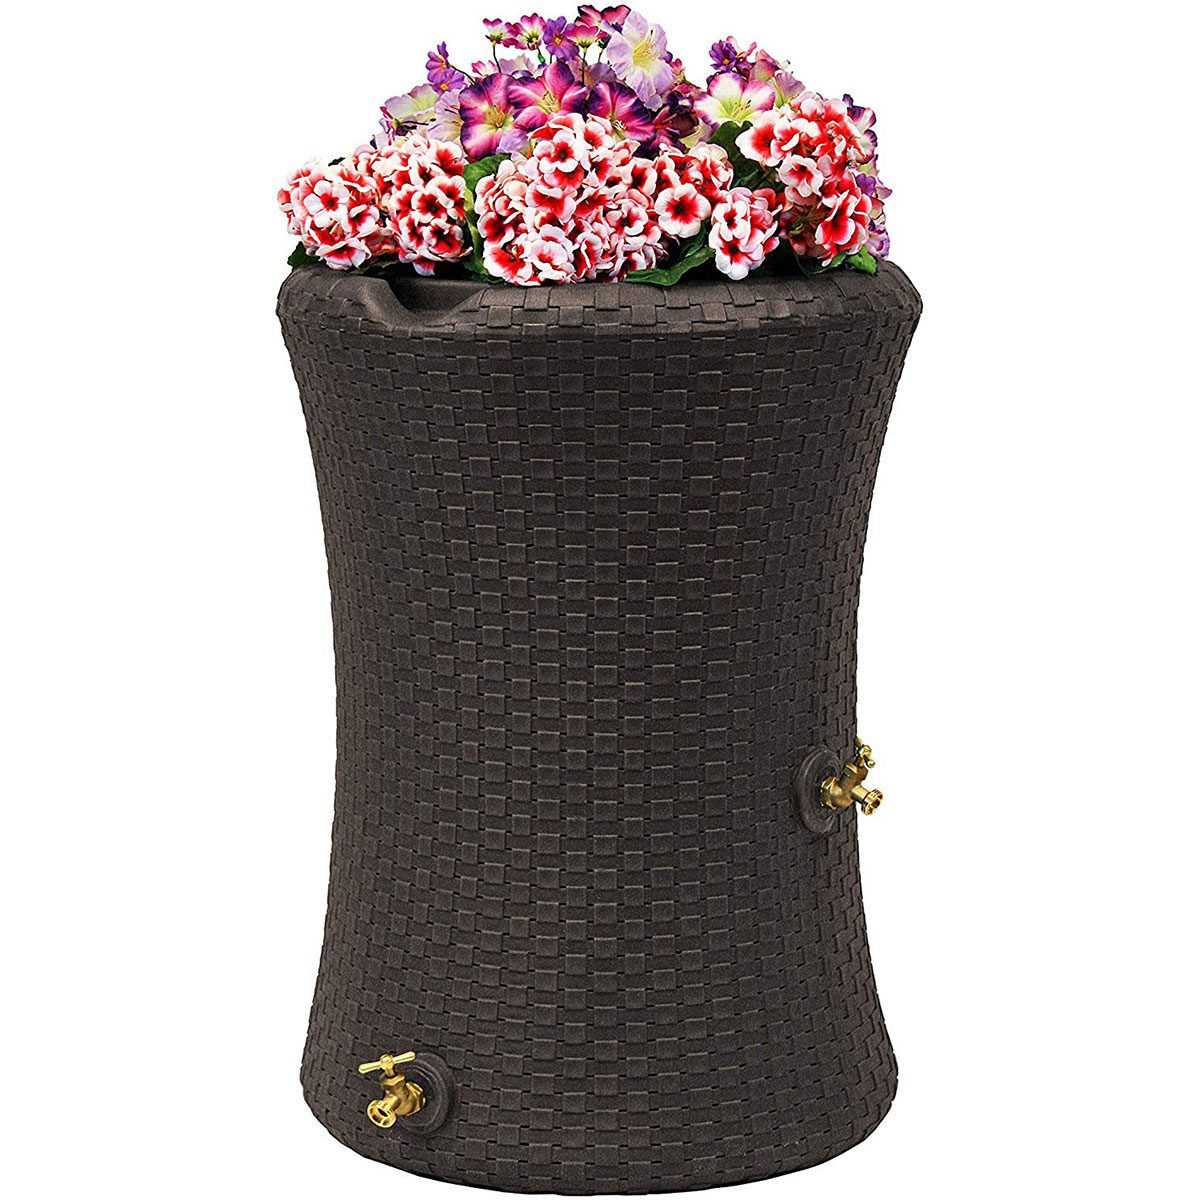 Black rain barrel with pink flowers on top